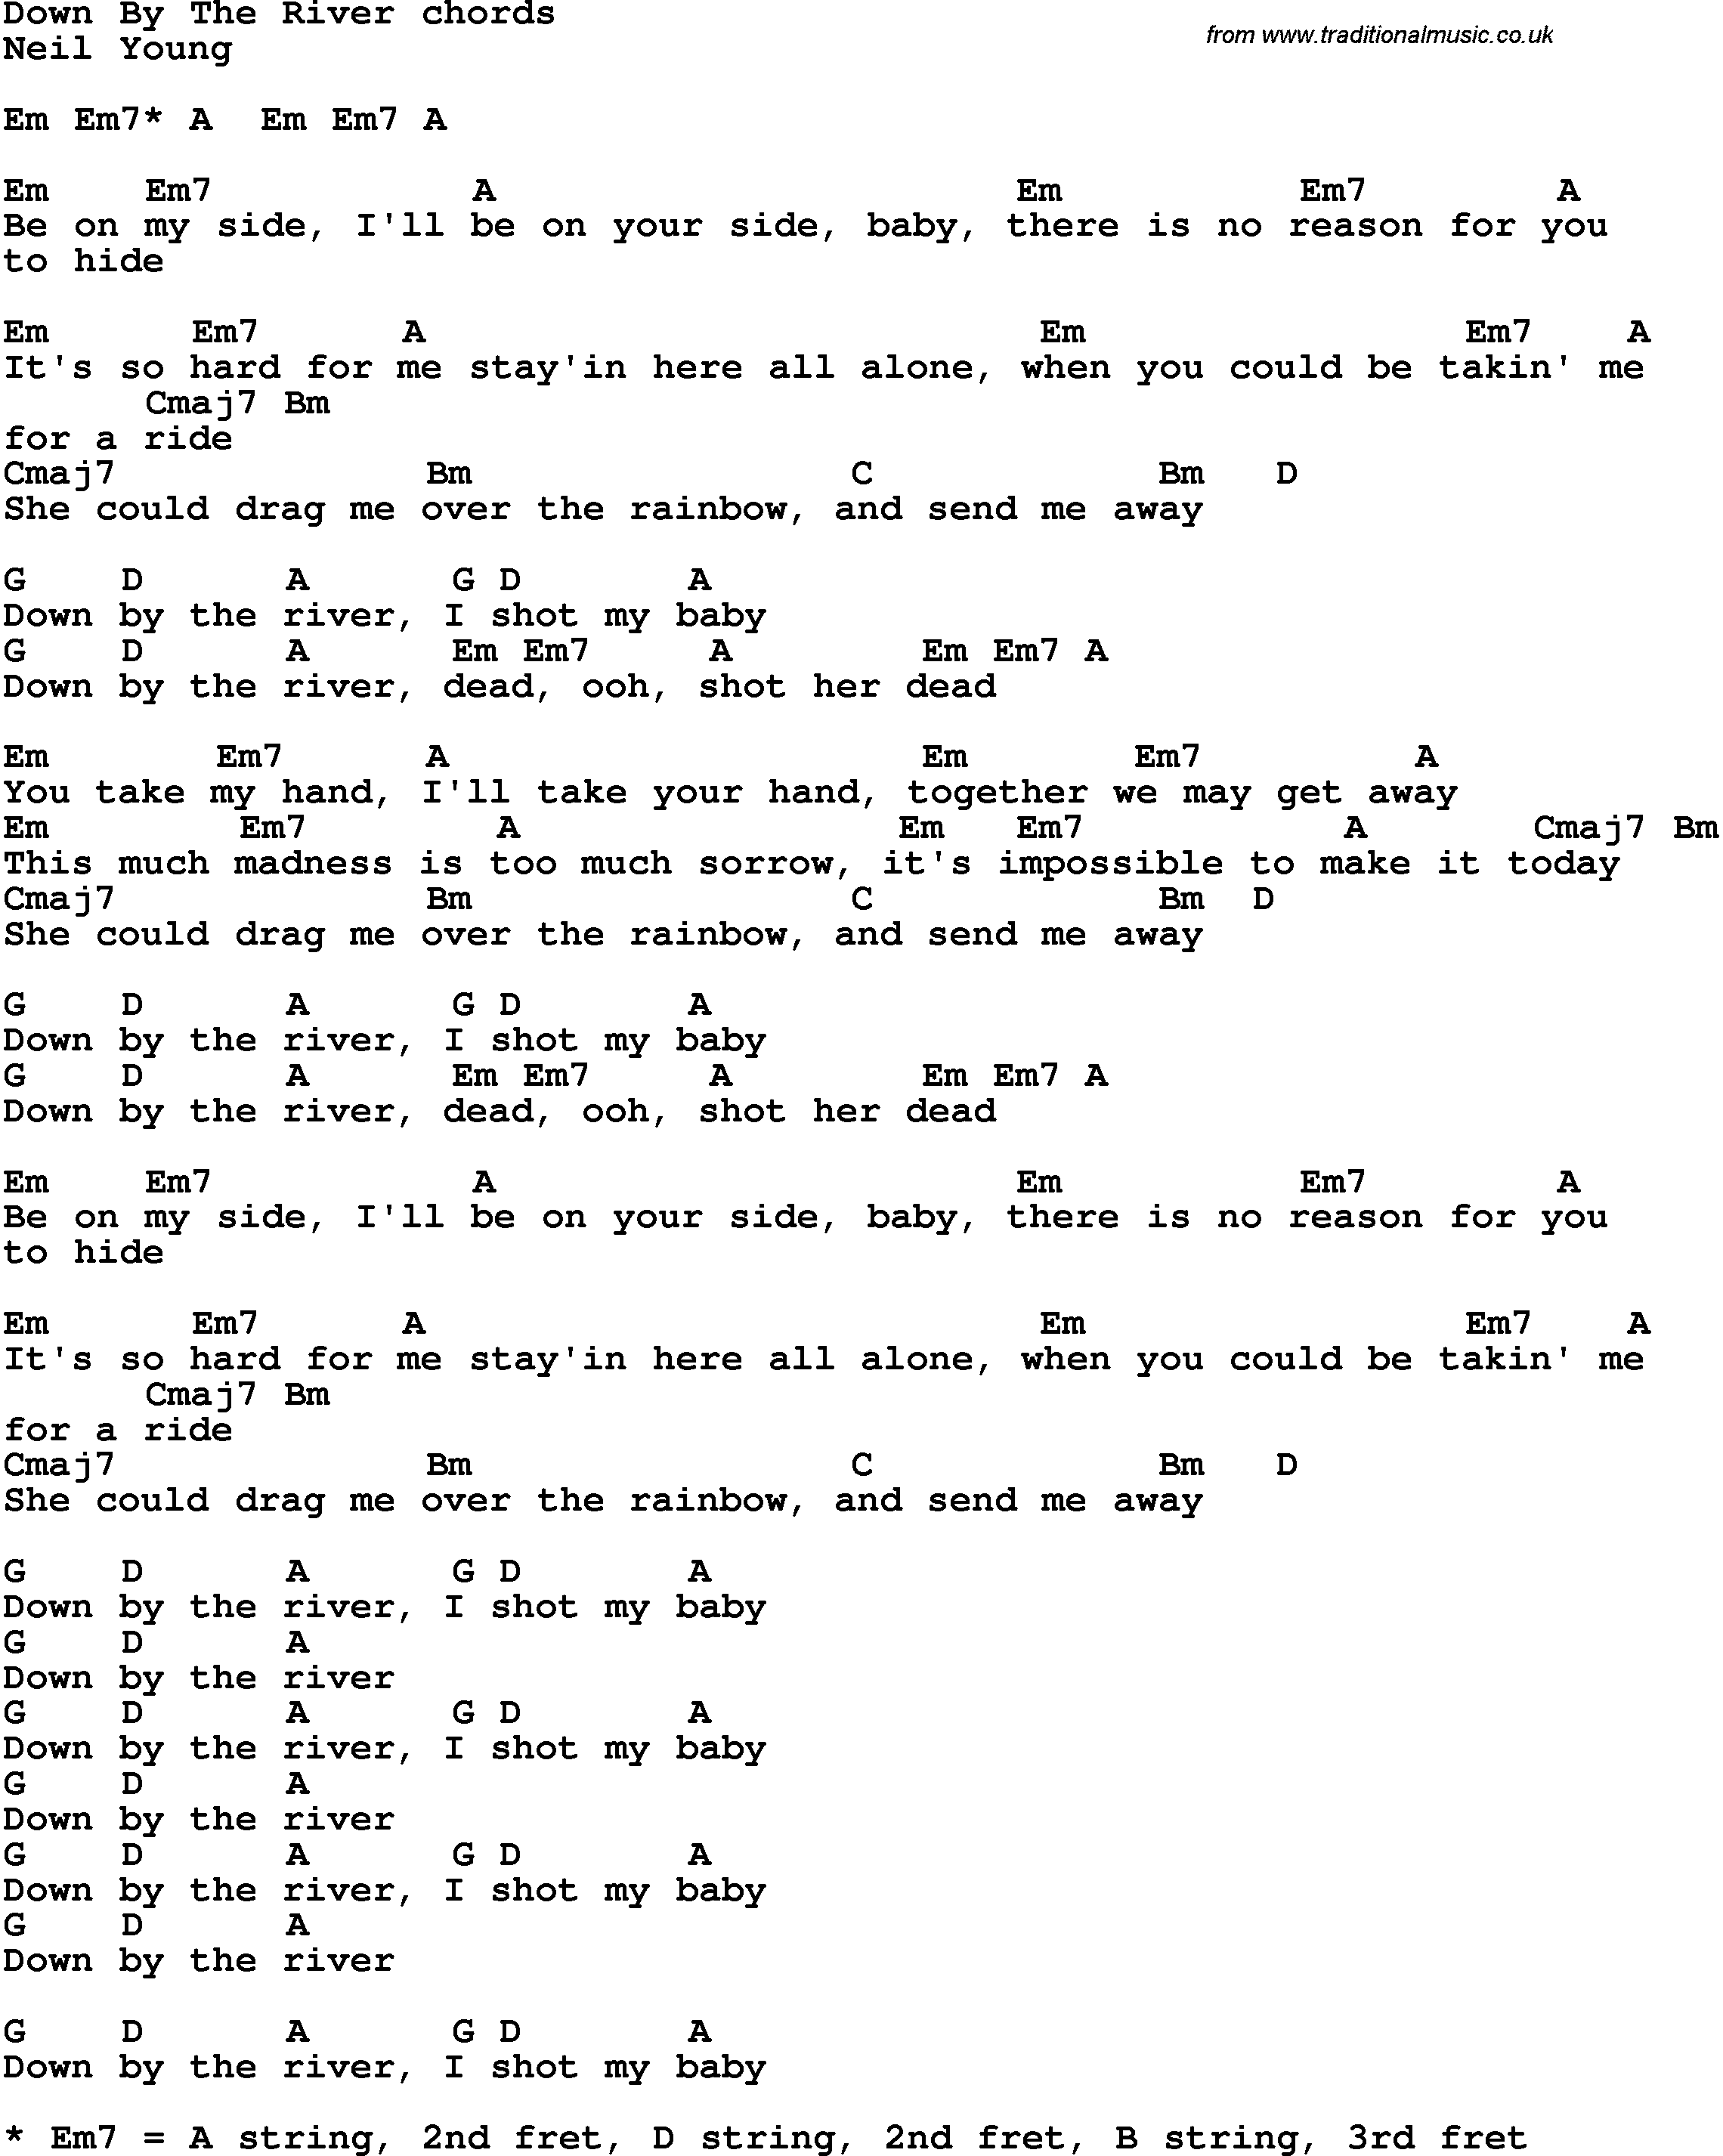 Song lyrics with guitar chords for Down By The River